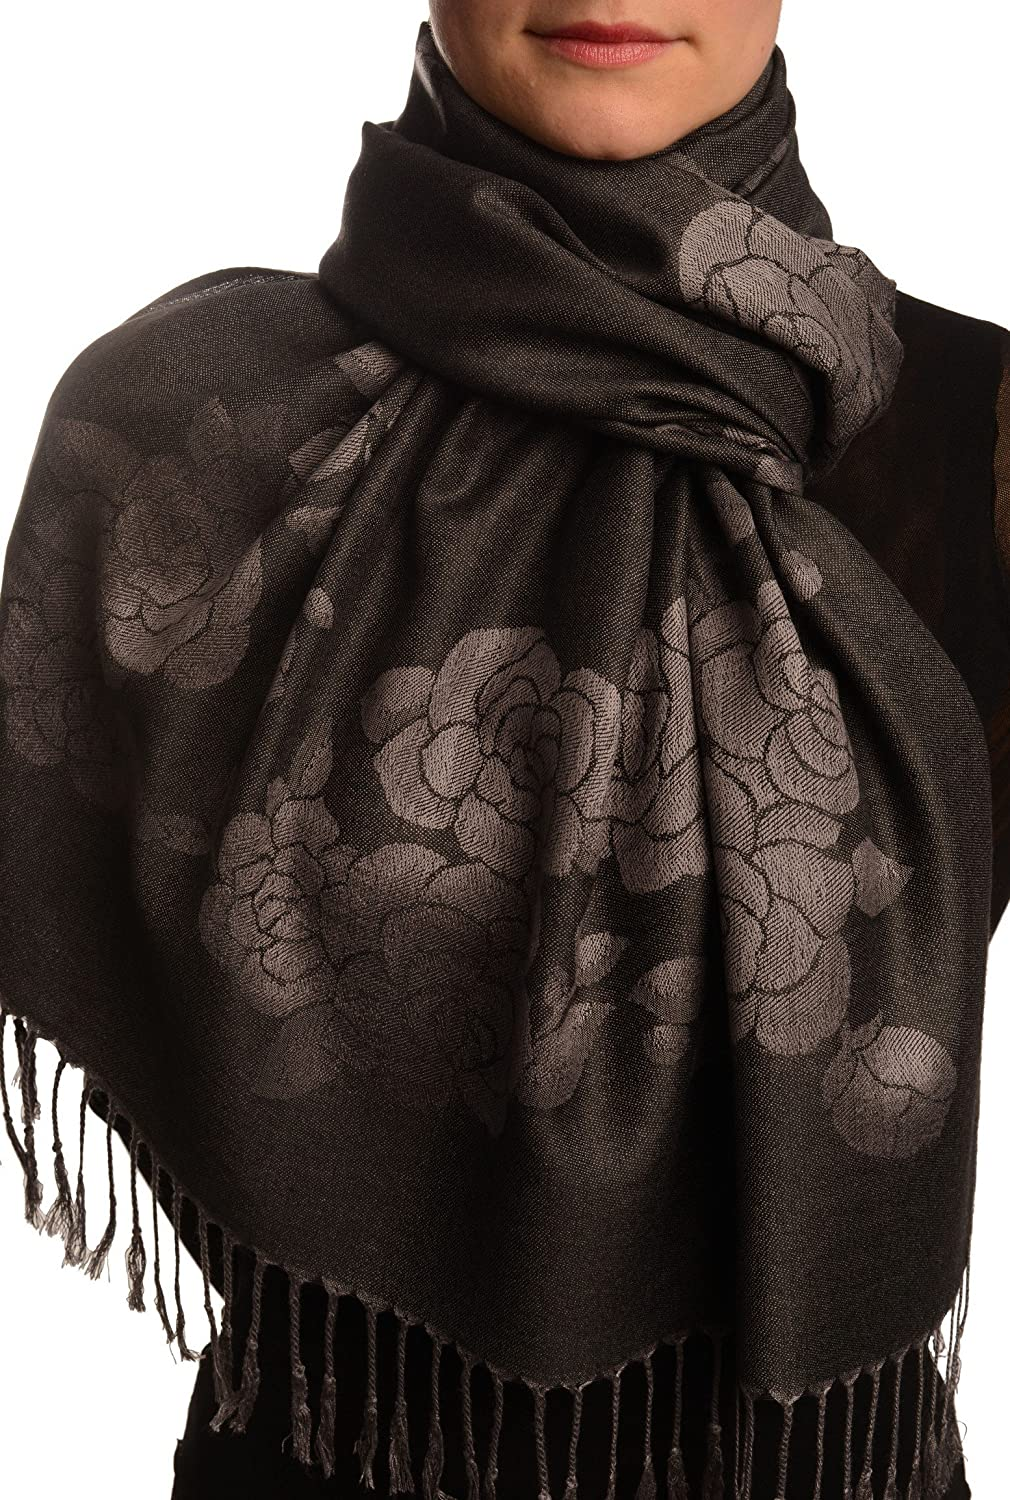 Roses On Black Pashmina Feel With Tassels - Scarf